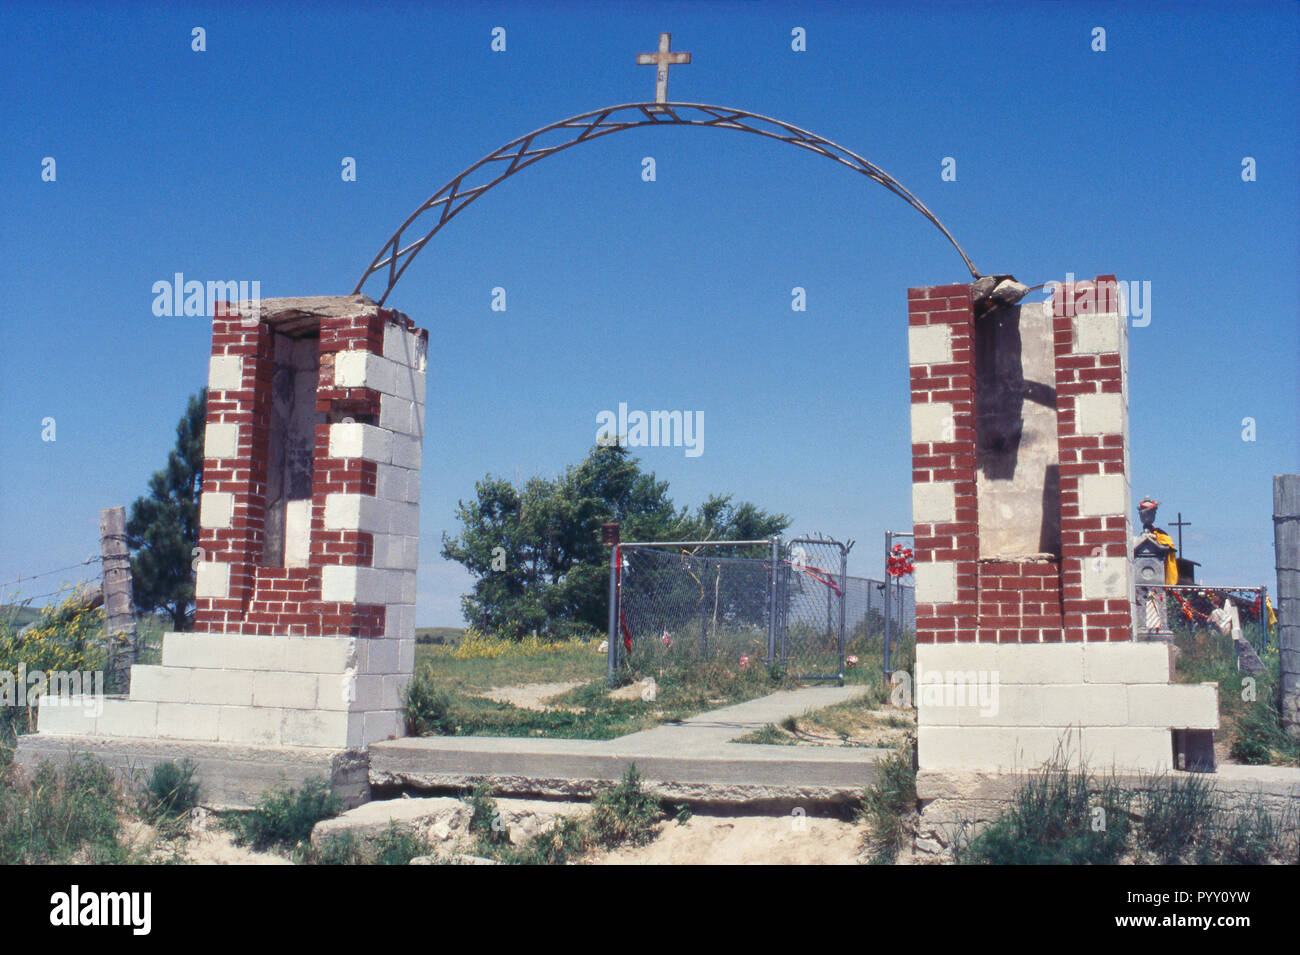 Graveyard for Wounded Knee Massacre victims, Pine Ridge Sioux Reservation, South Dakota. Photograph Stock Photo